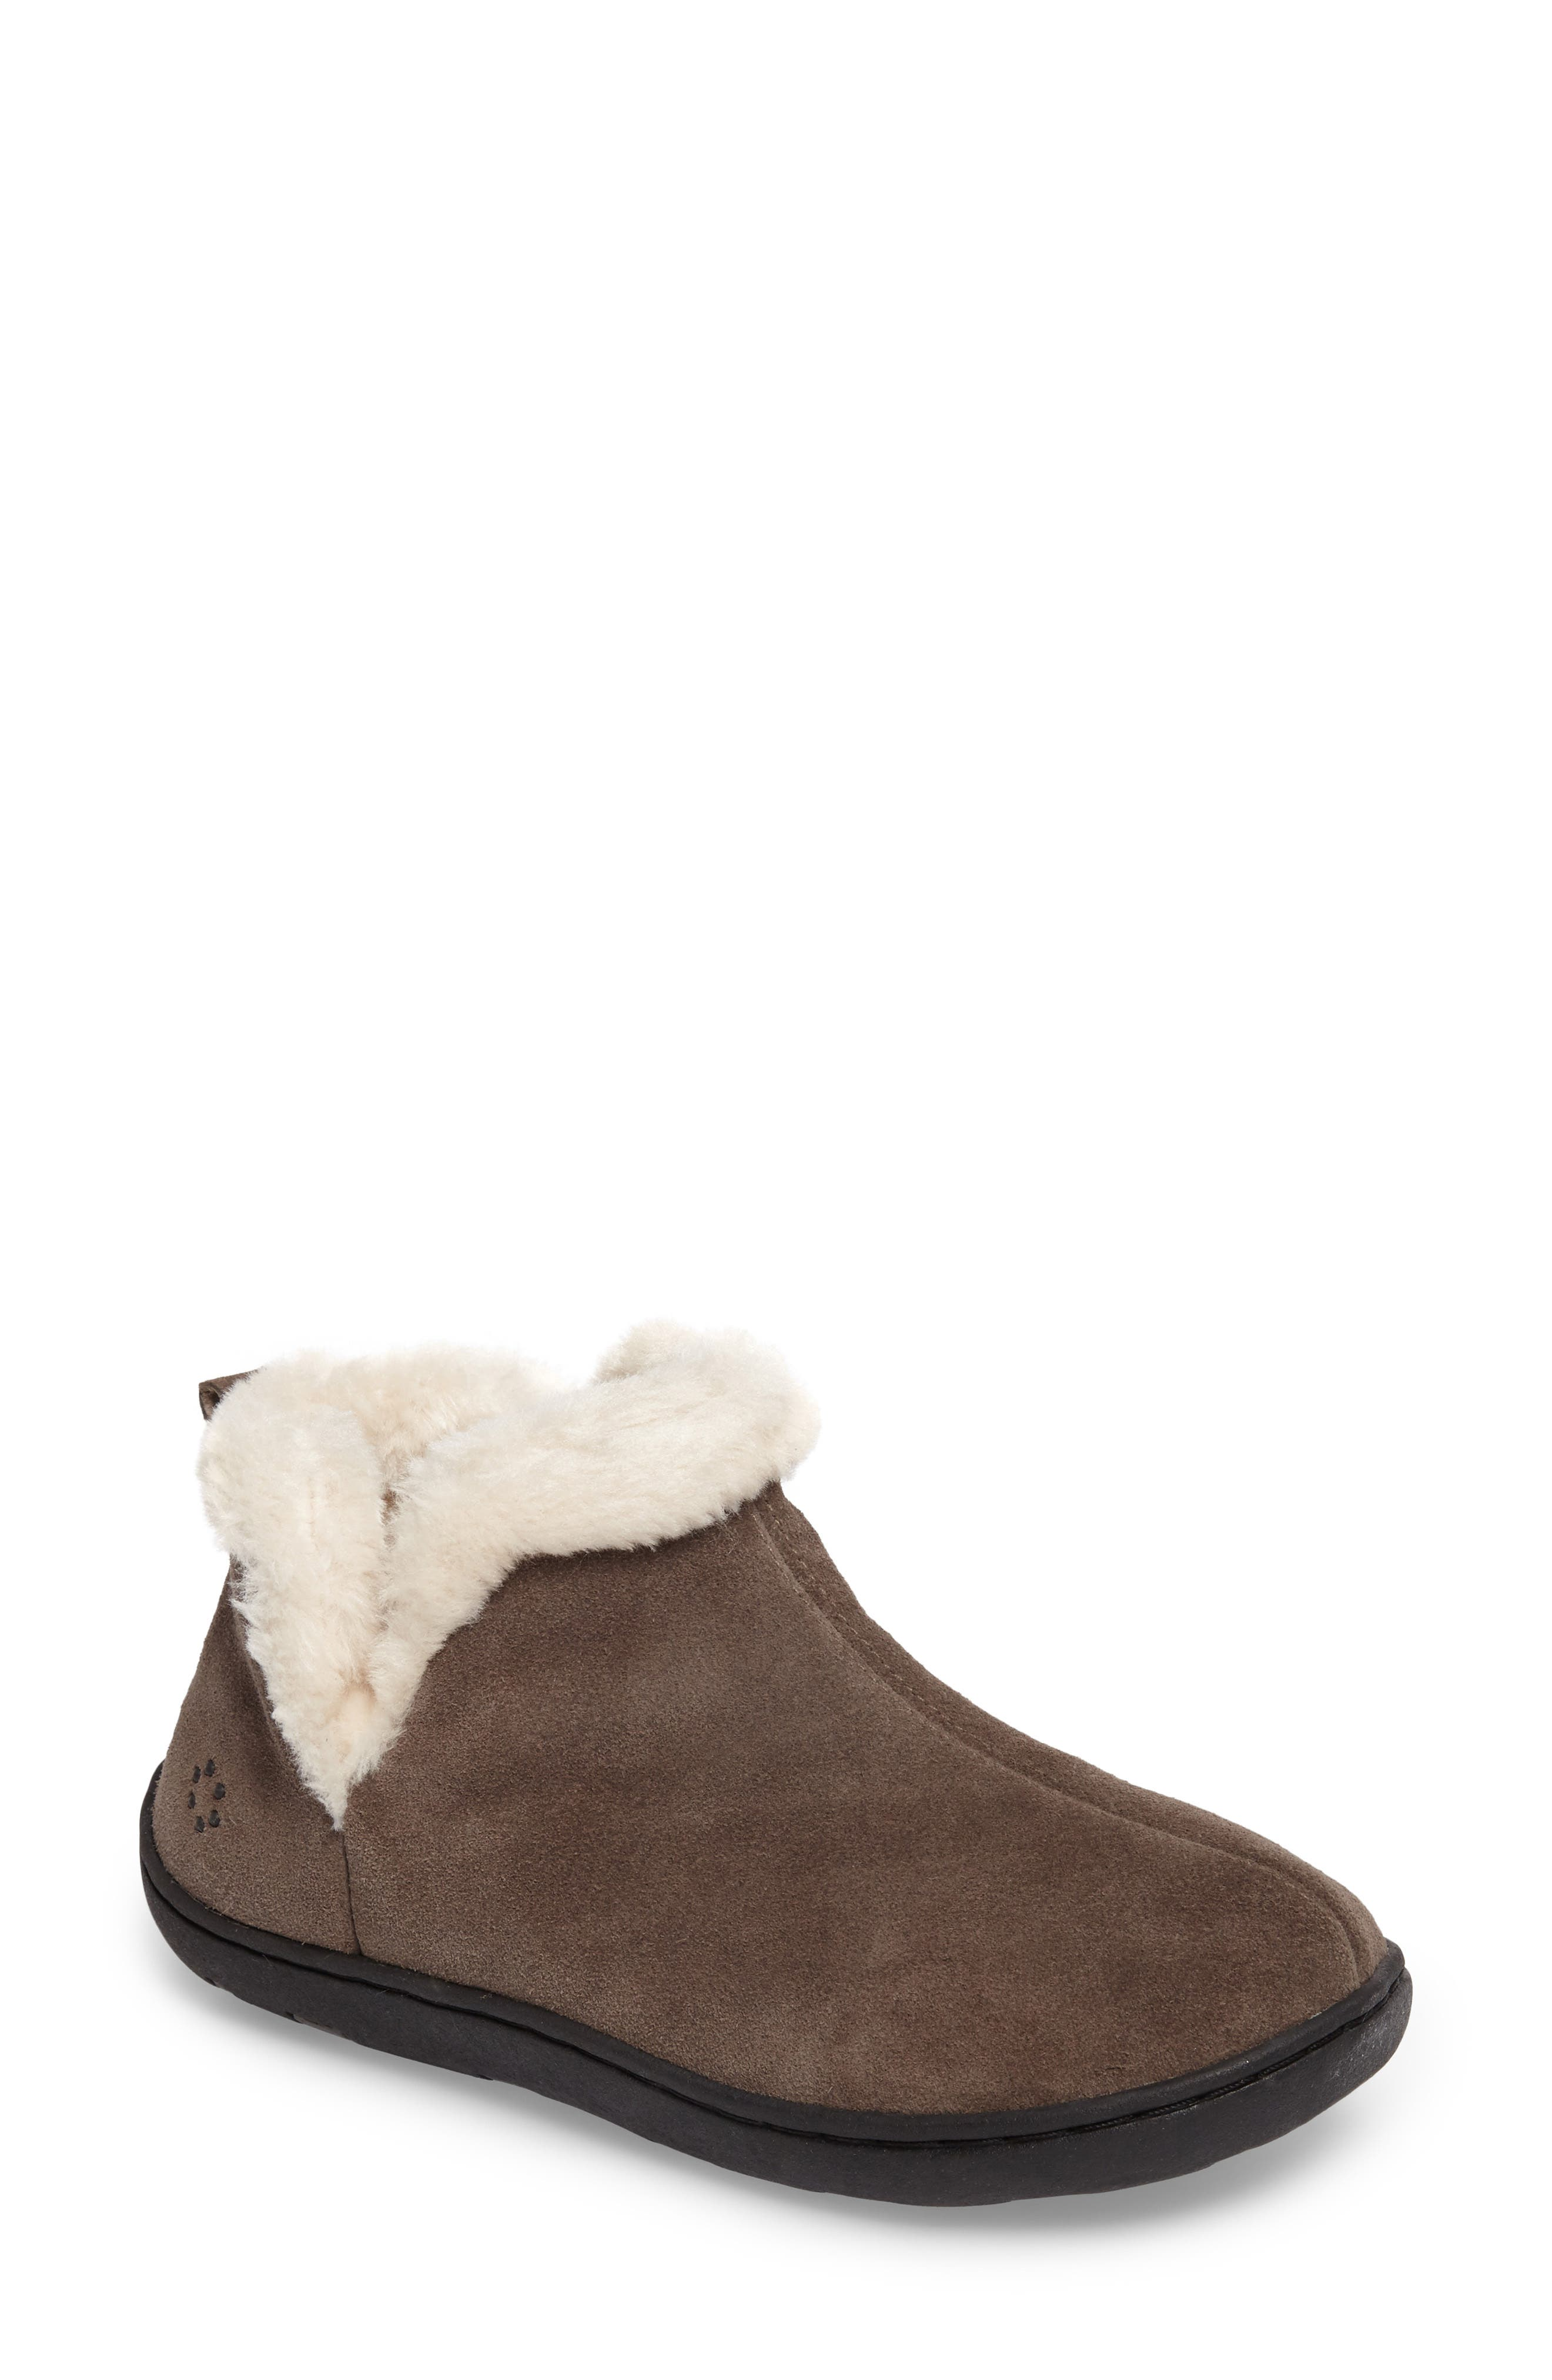 Vallery Bootie Slipper,                             Main thumbnail 1, color,                             GRAY SUEDE